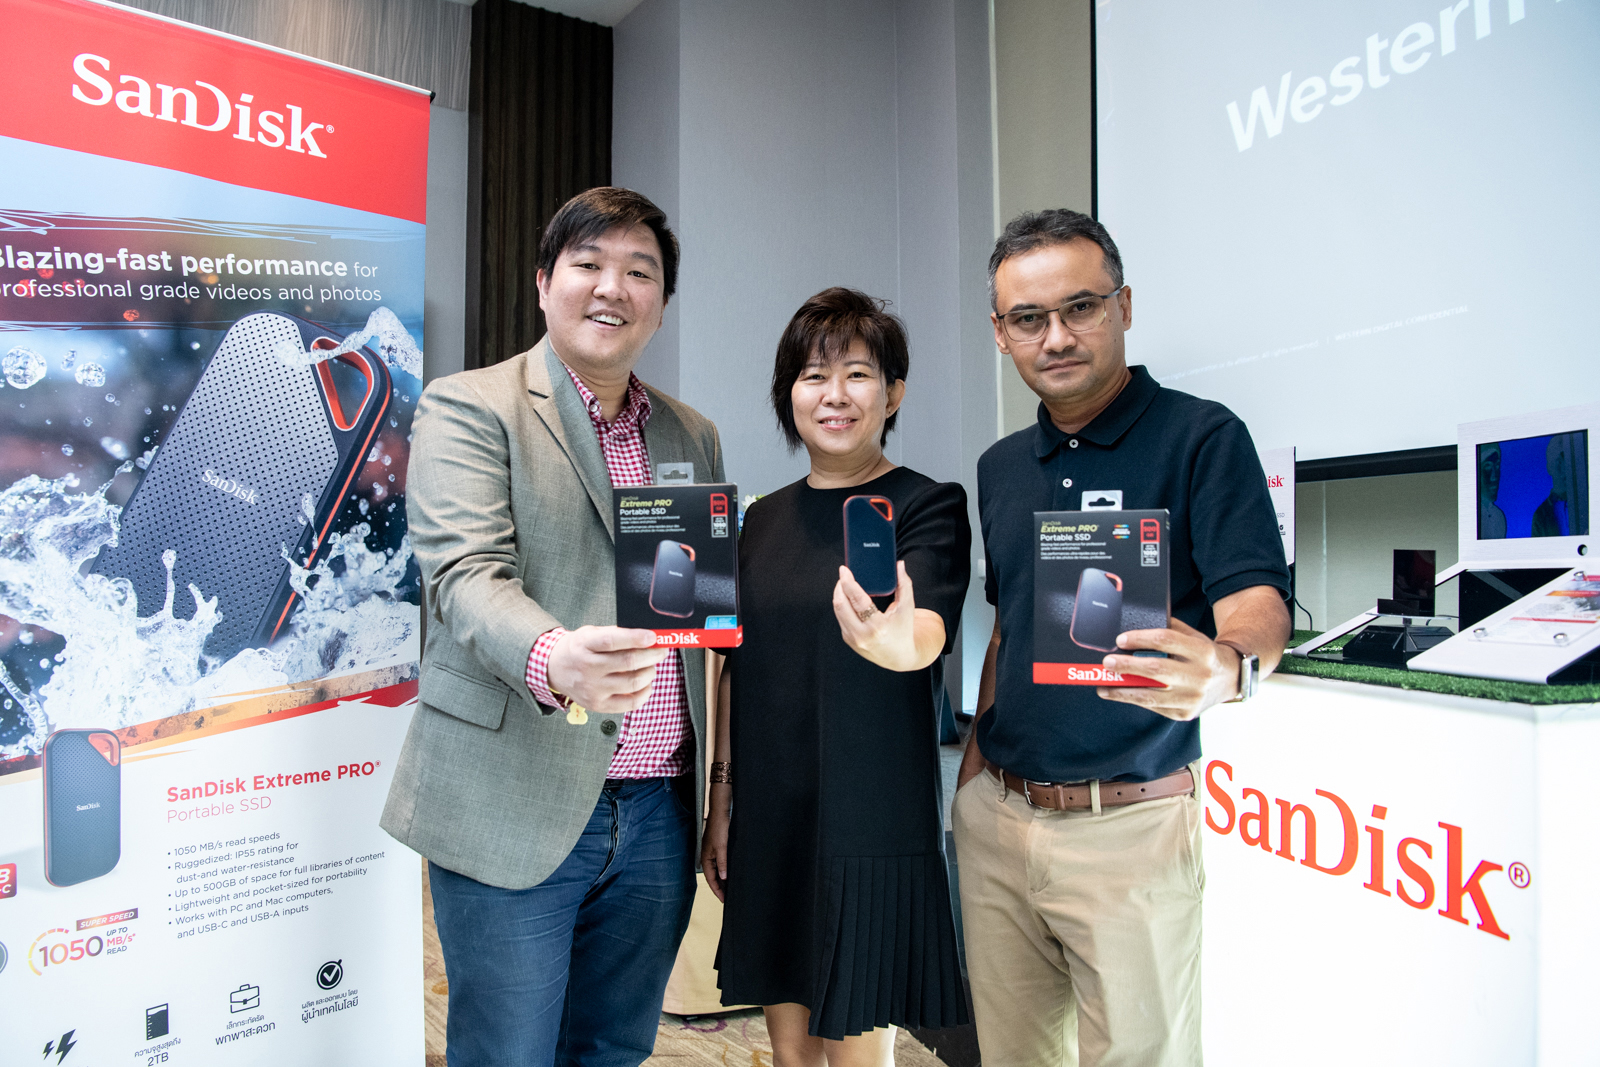 SanDisk Extreme PRO Portable SSD E80 in thailand